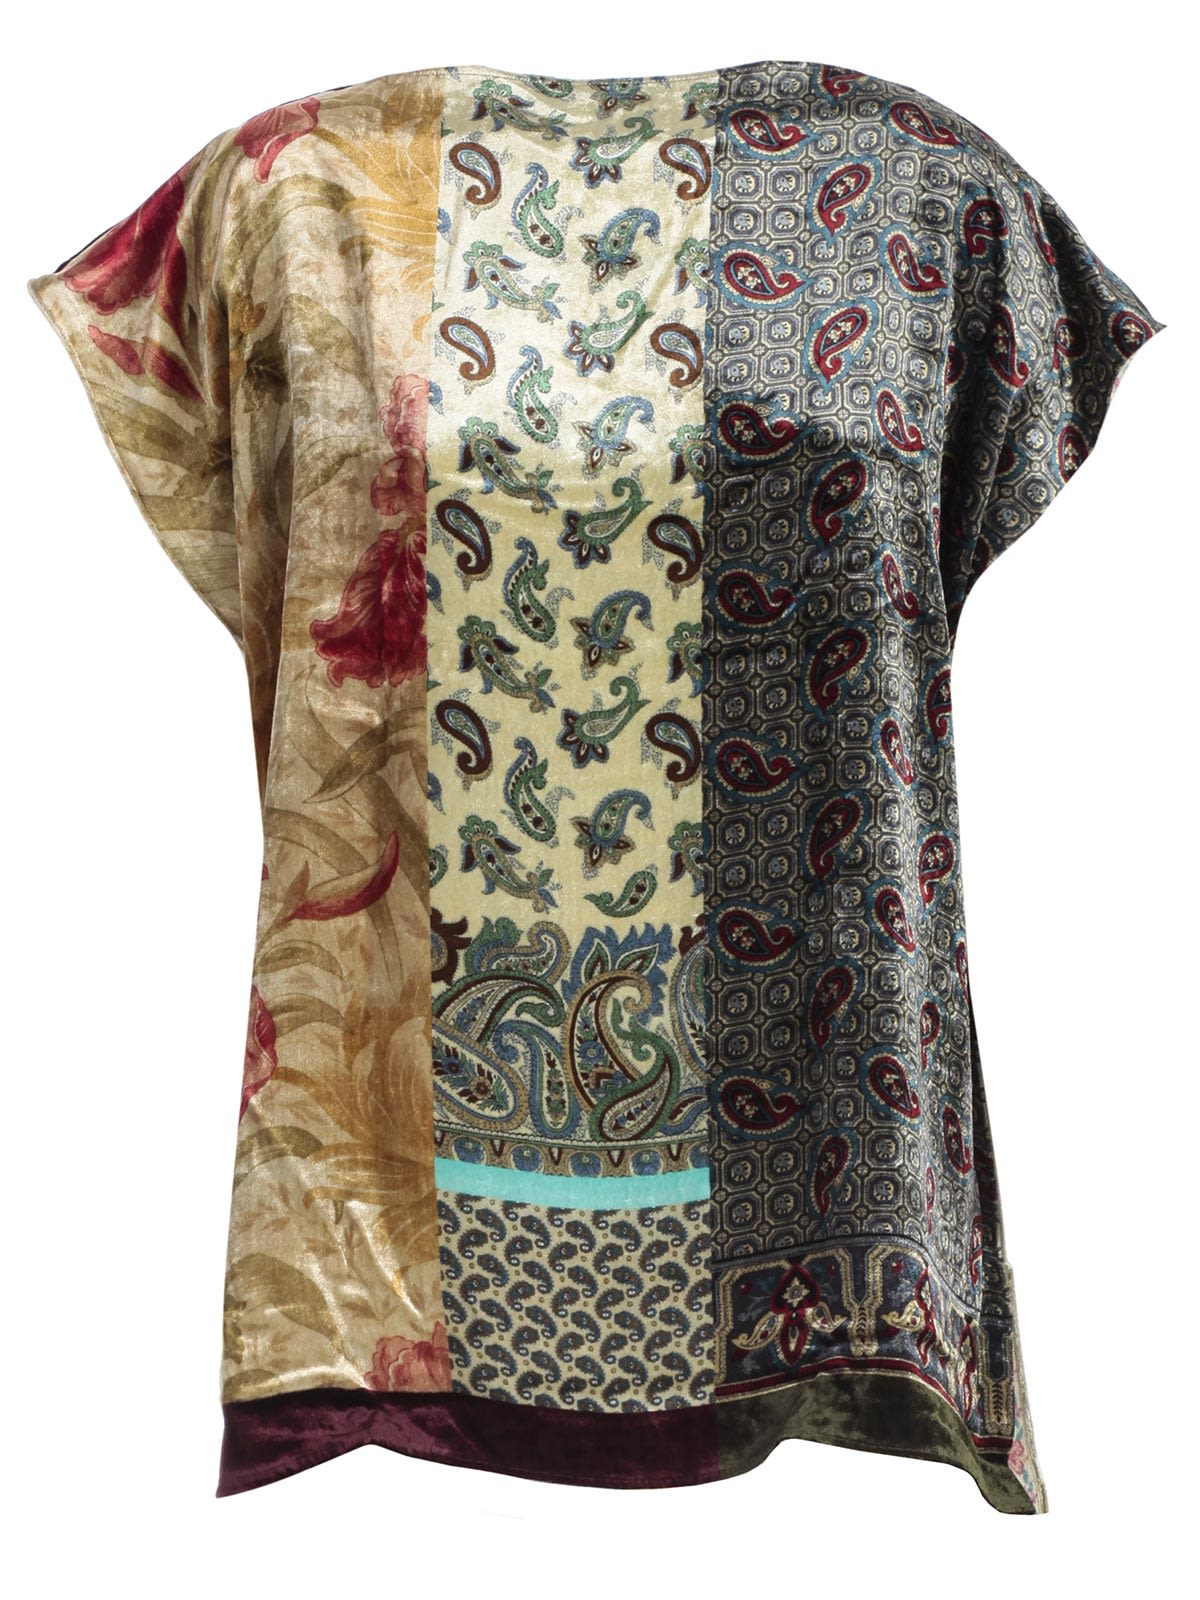 Pierre Louis Mascia' Multiple Paisley And Floral Print Top in Neutrals